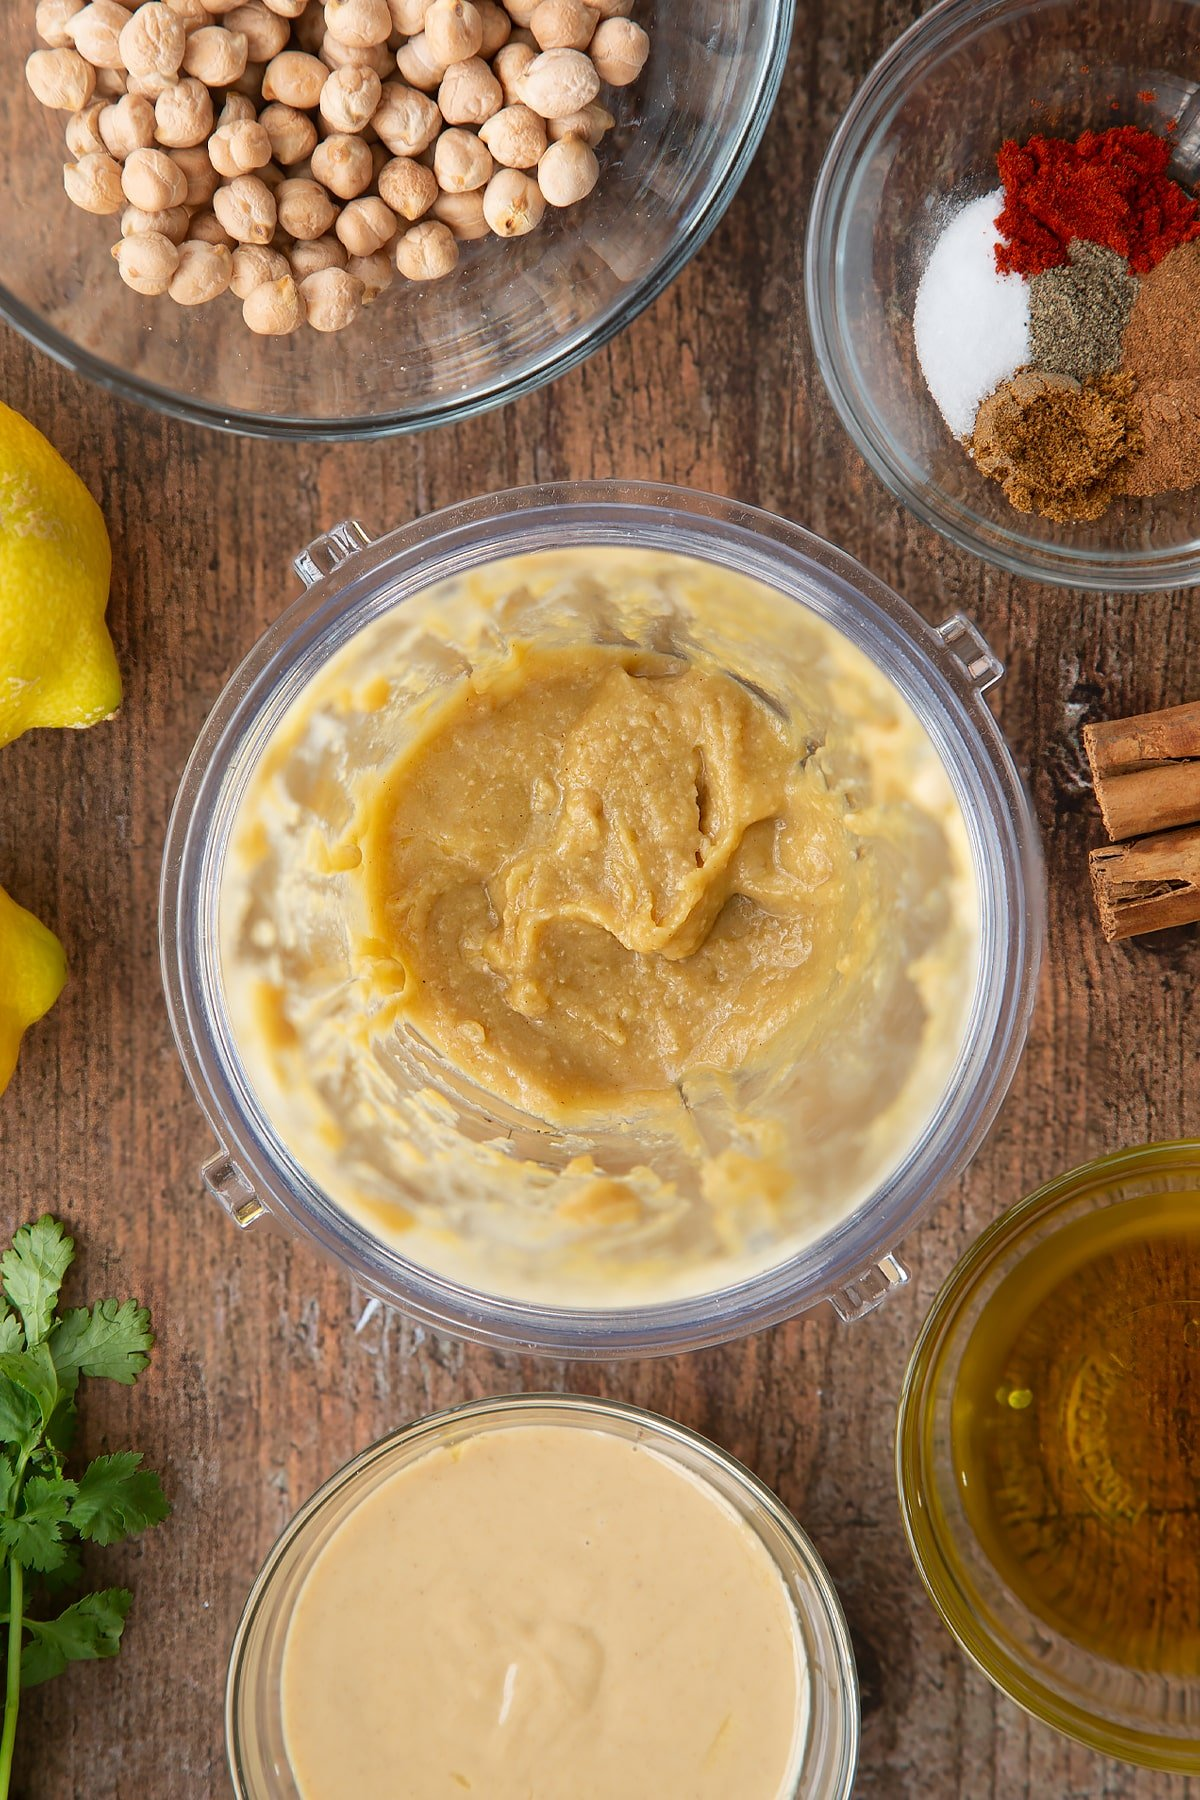 Tahini, lemon juice and oil whipped together in a small blender bowl. Ingredients to make cinnamon hummus surround the bowl.